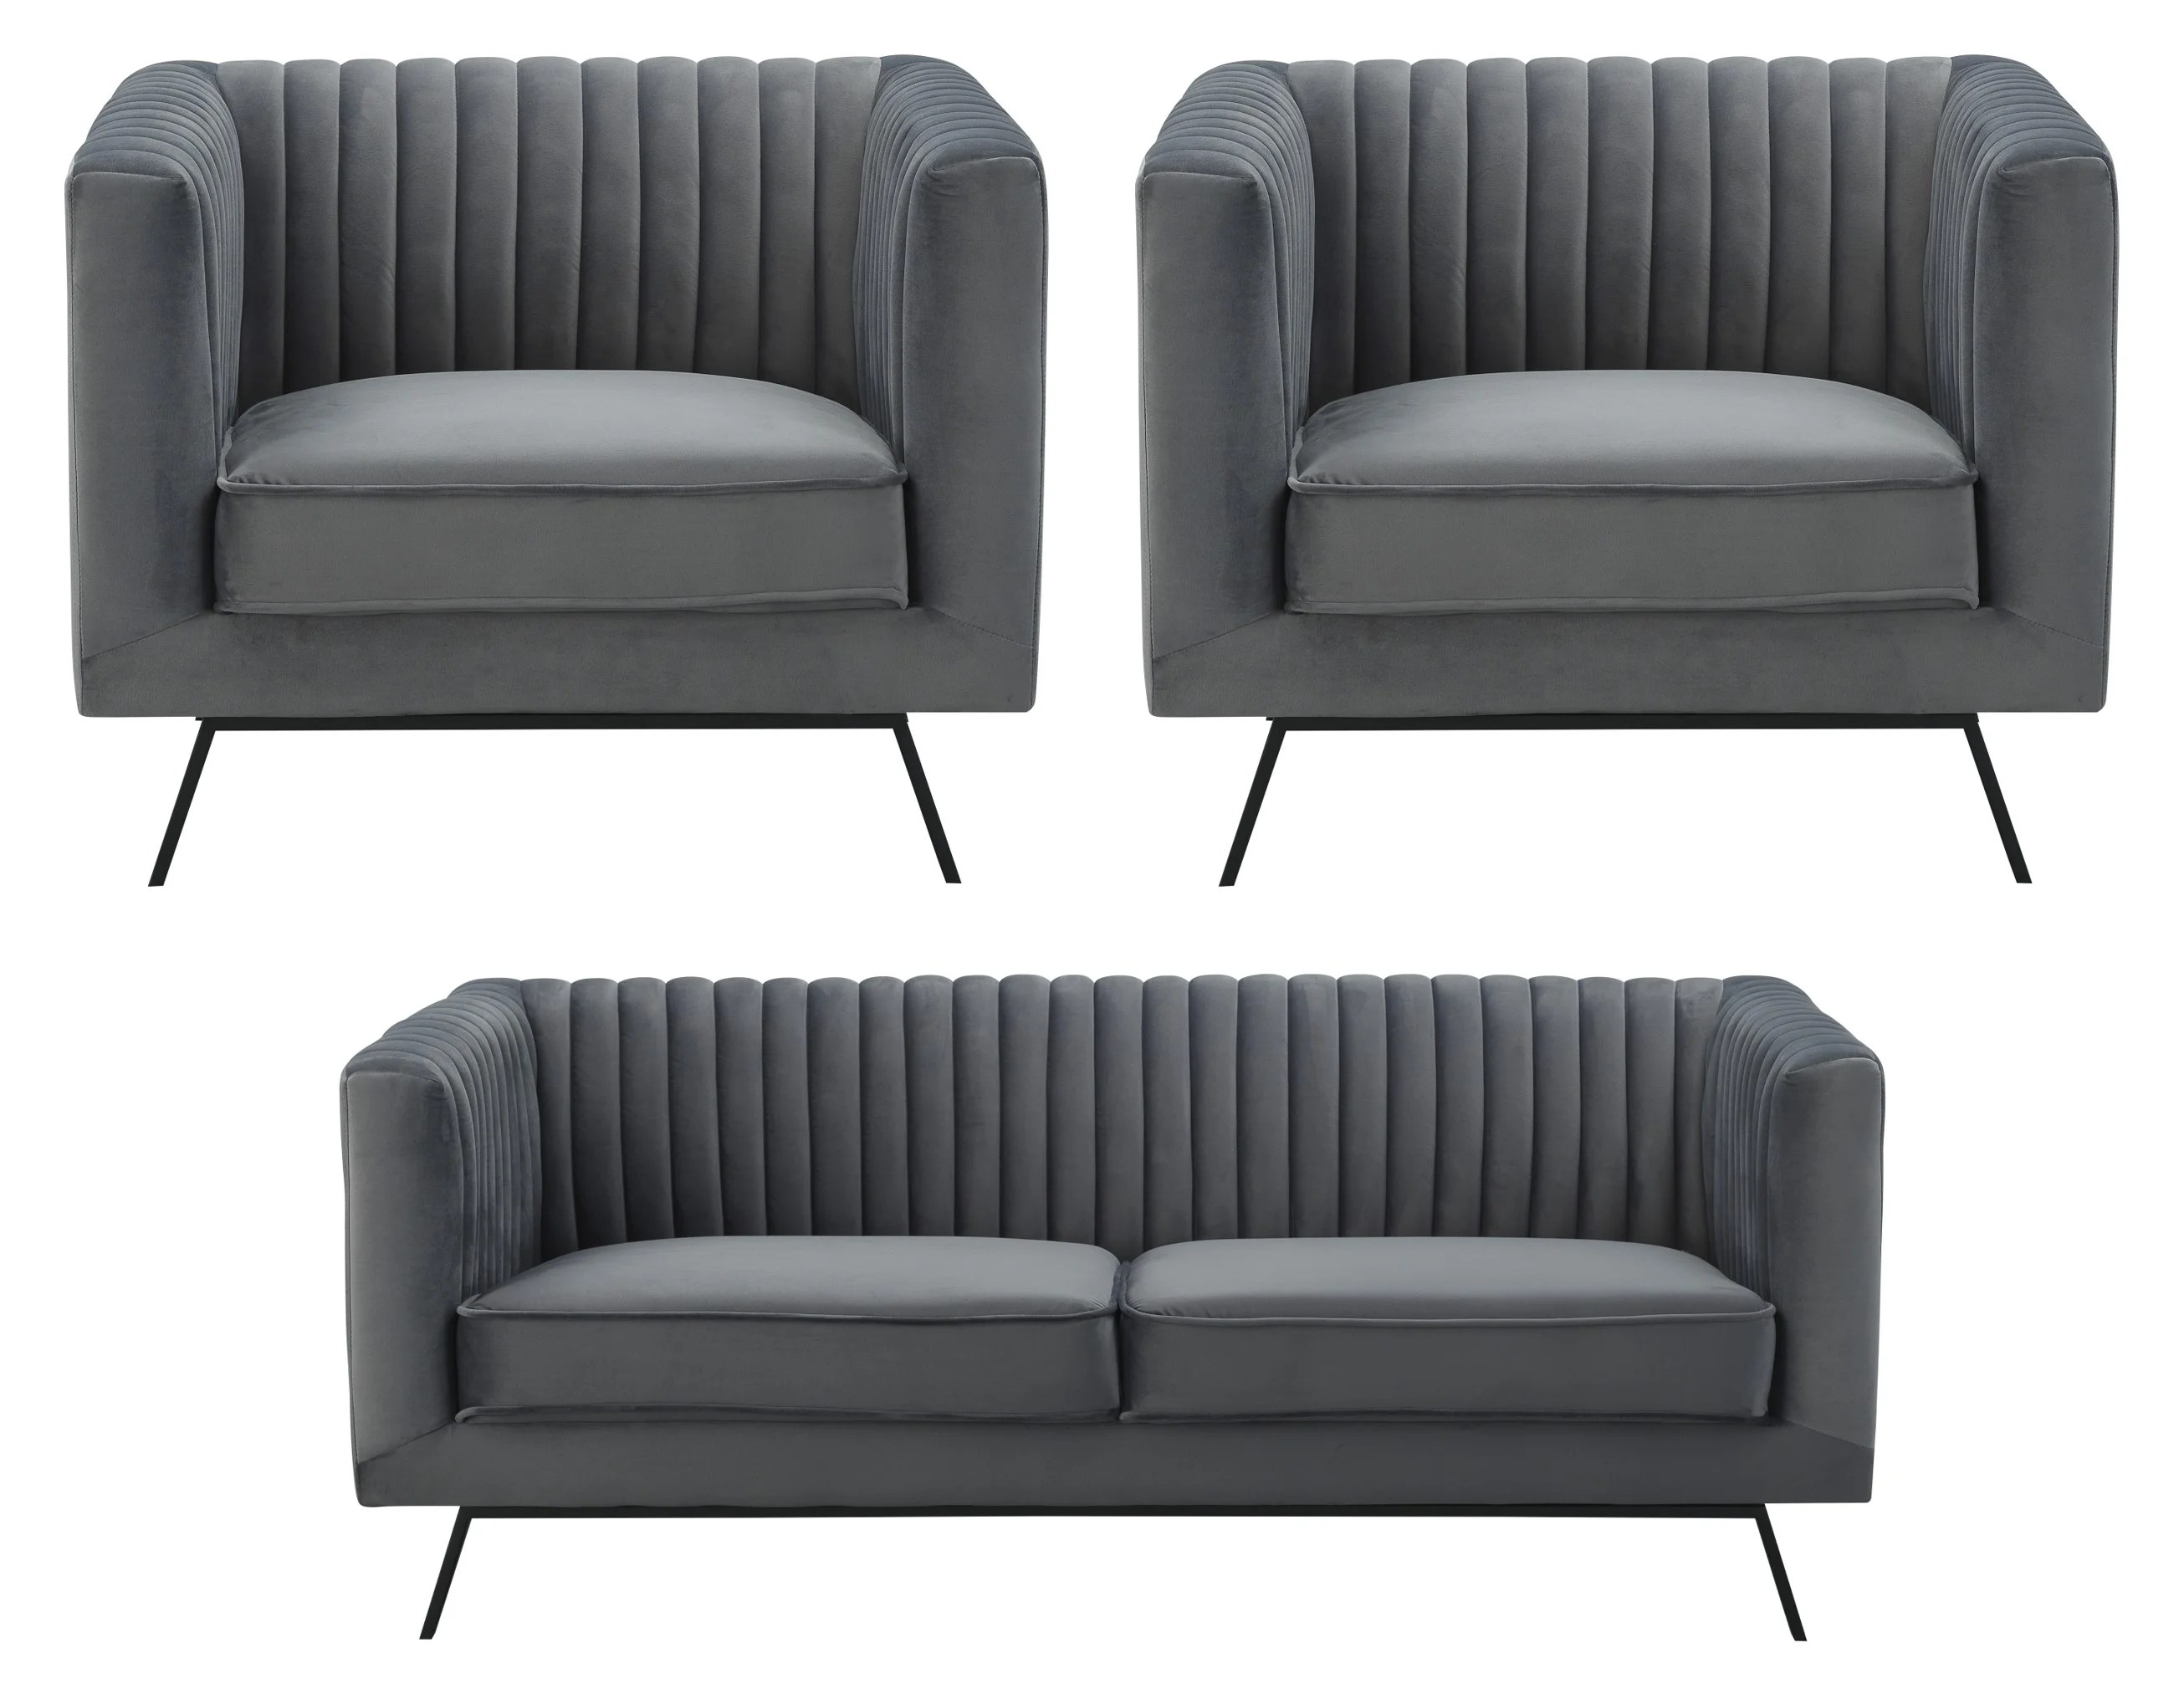 Sofology Quebec Cheap Sofas Yorkshire